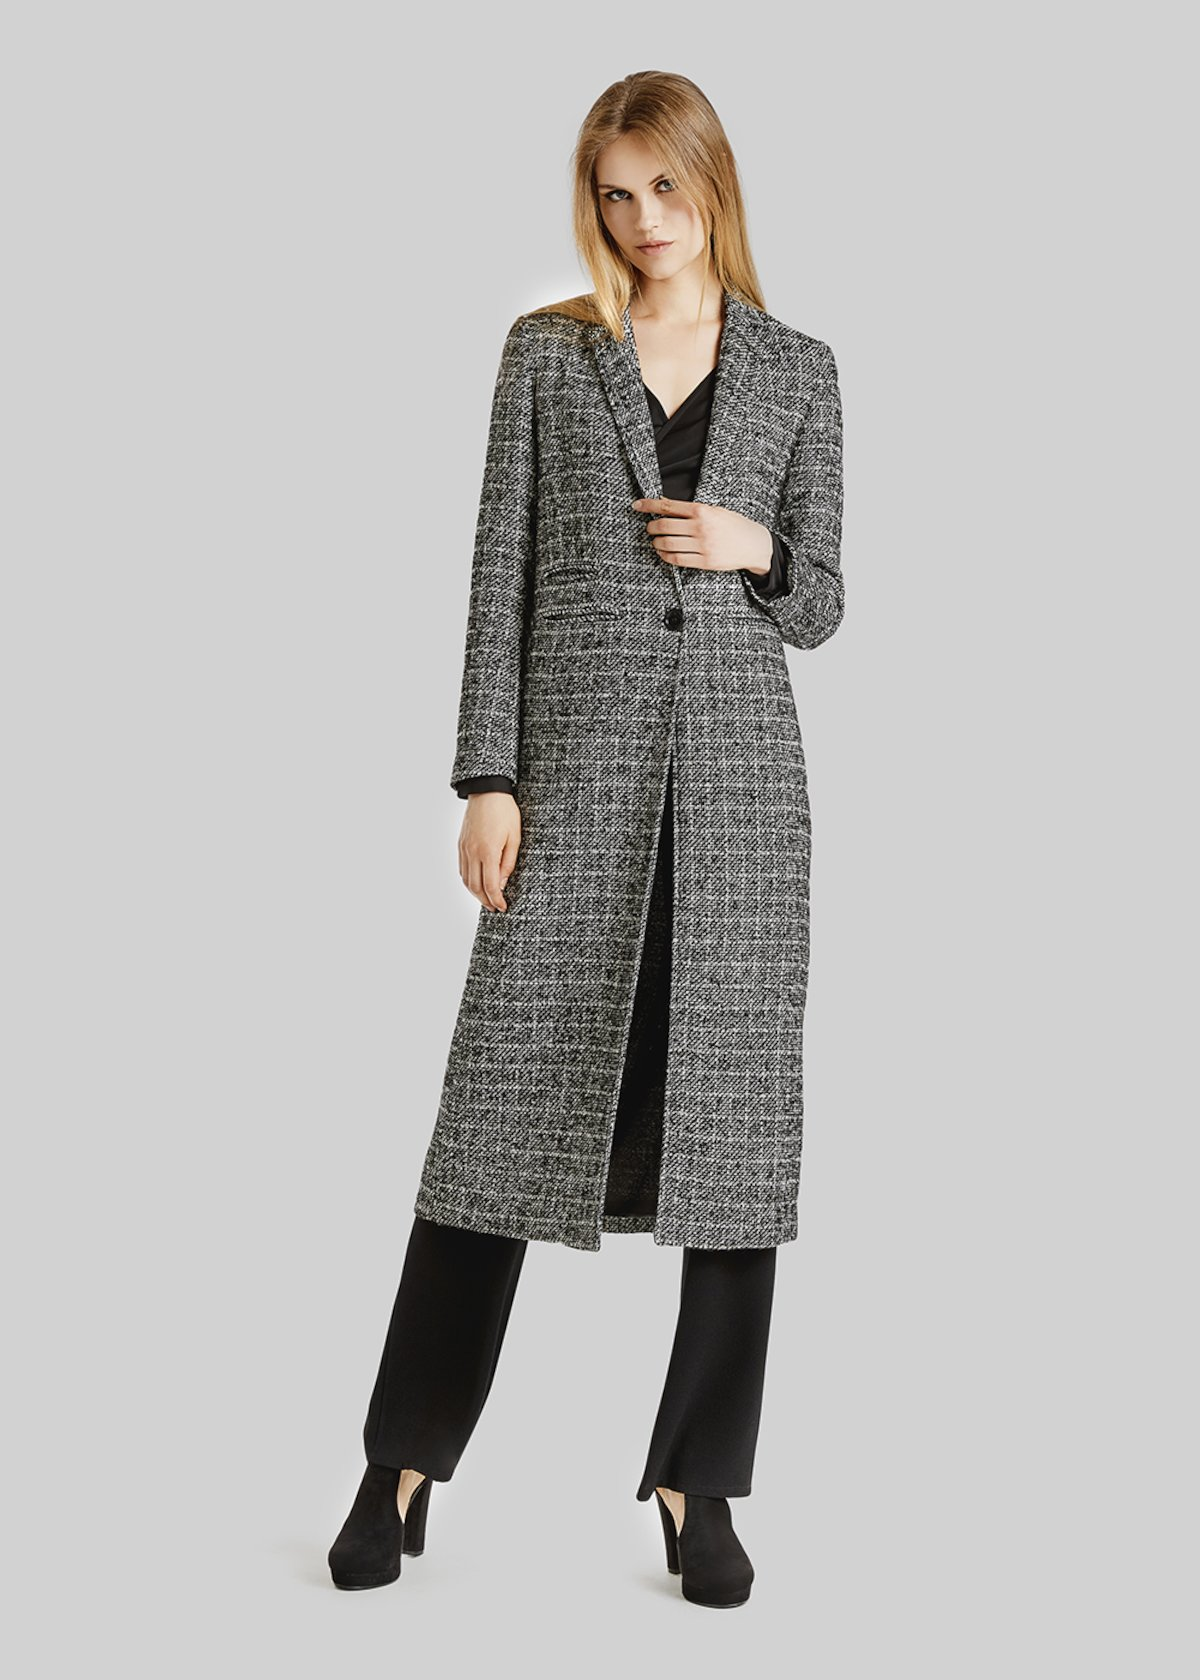 Cold long coat in in salt and pepper fabric